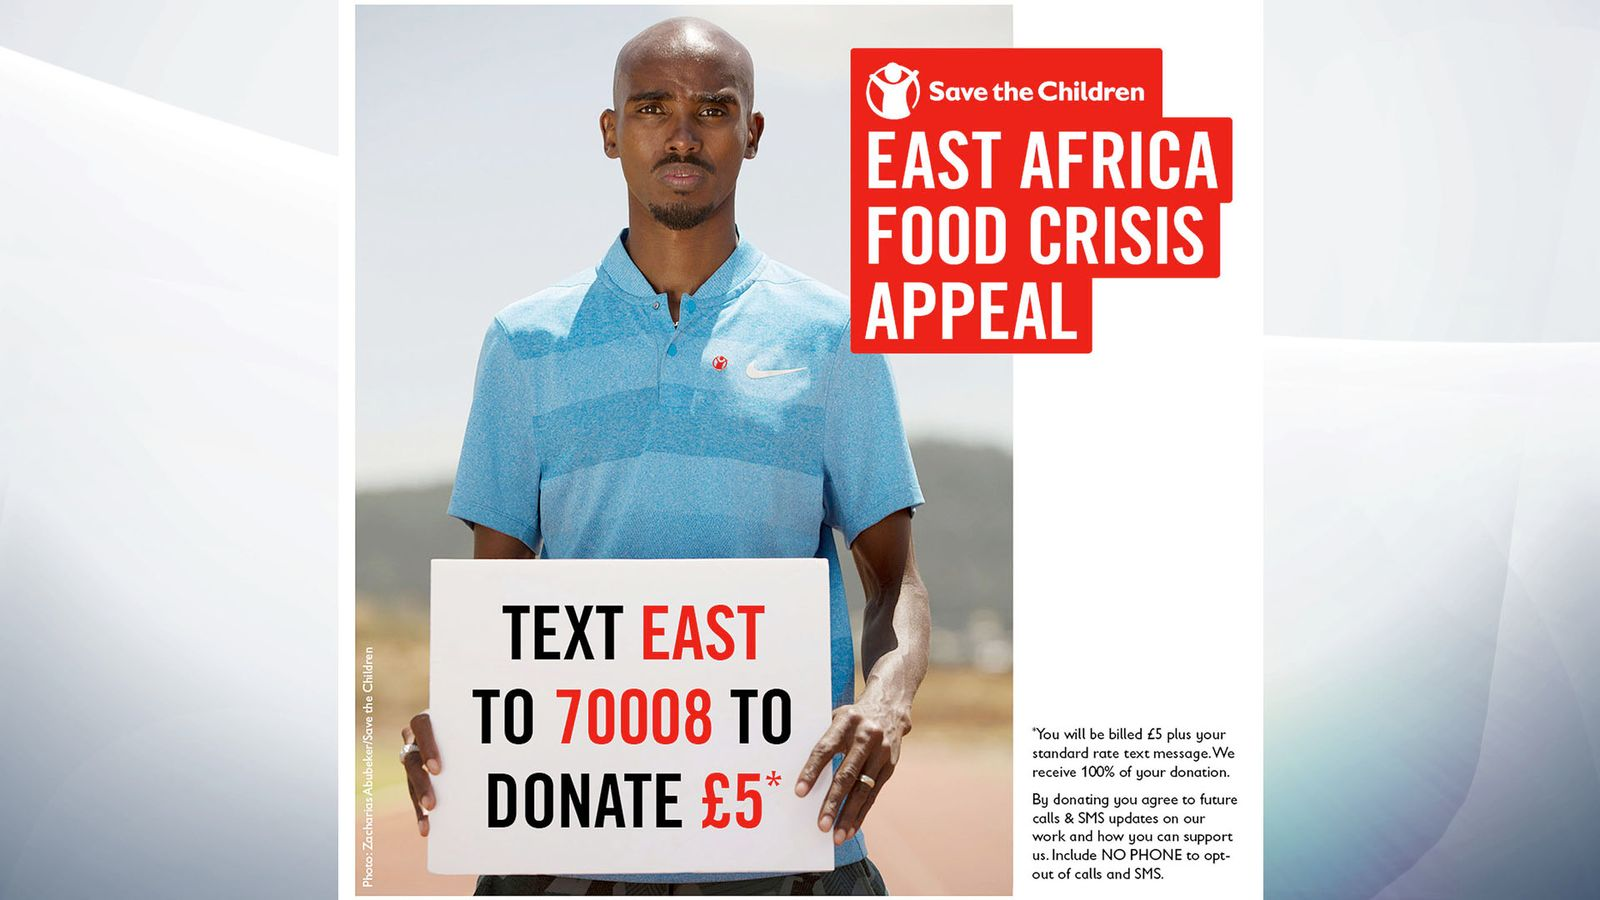 Sir Mo Farah spent his early childhood in Somalia